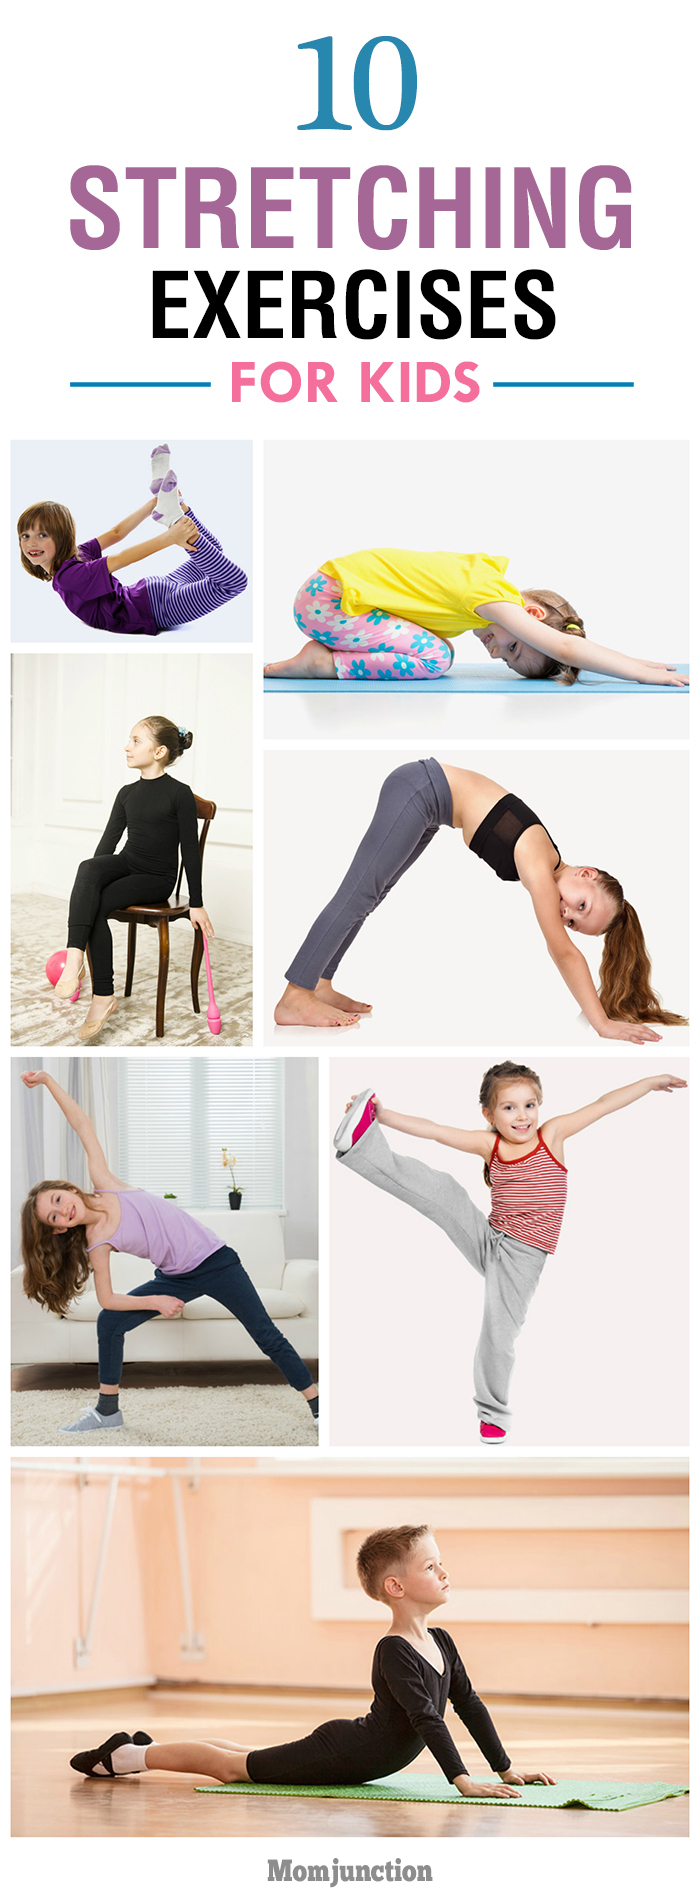 Best Stretching Exercises 1